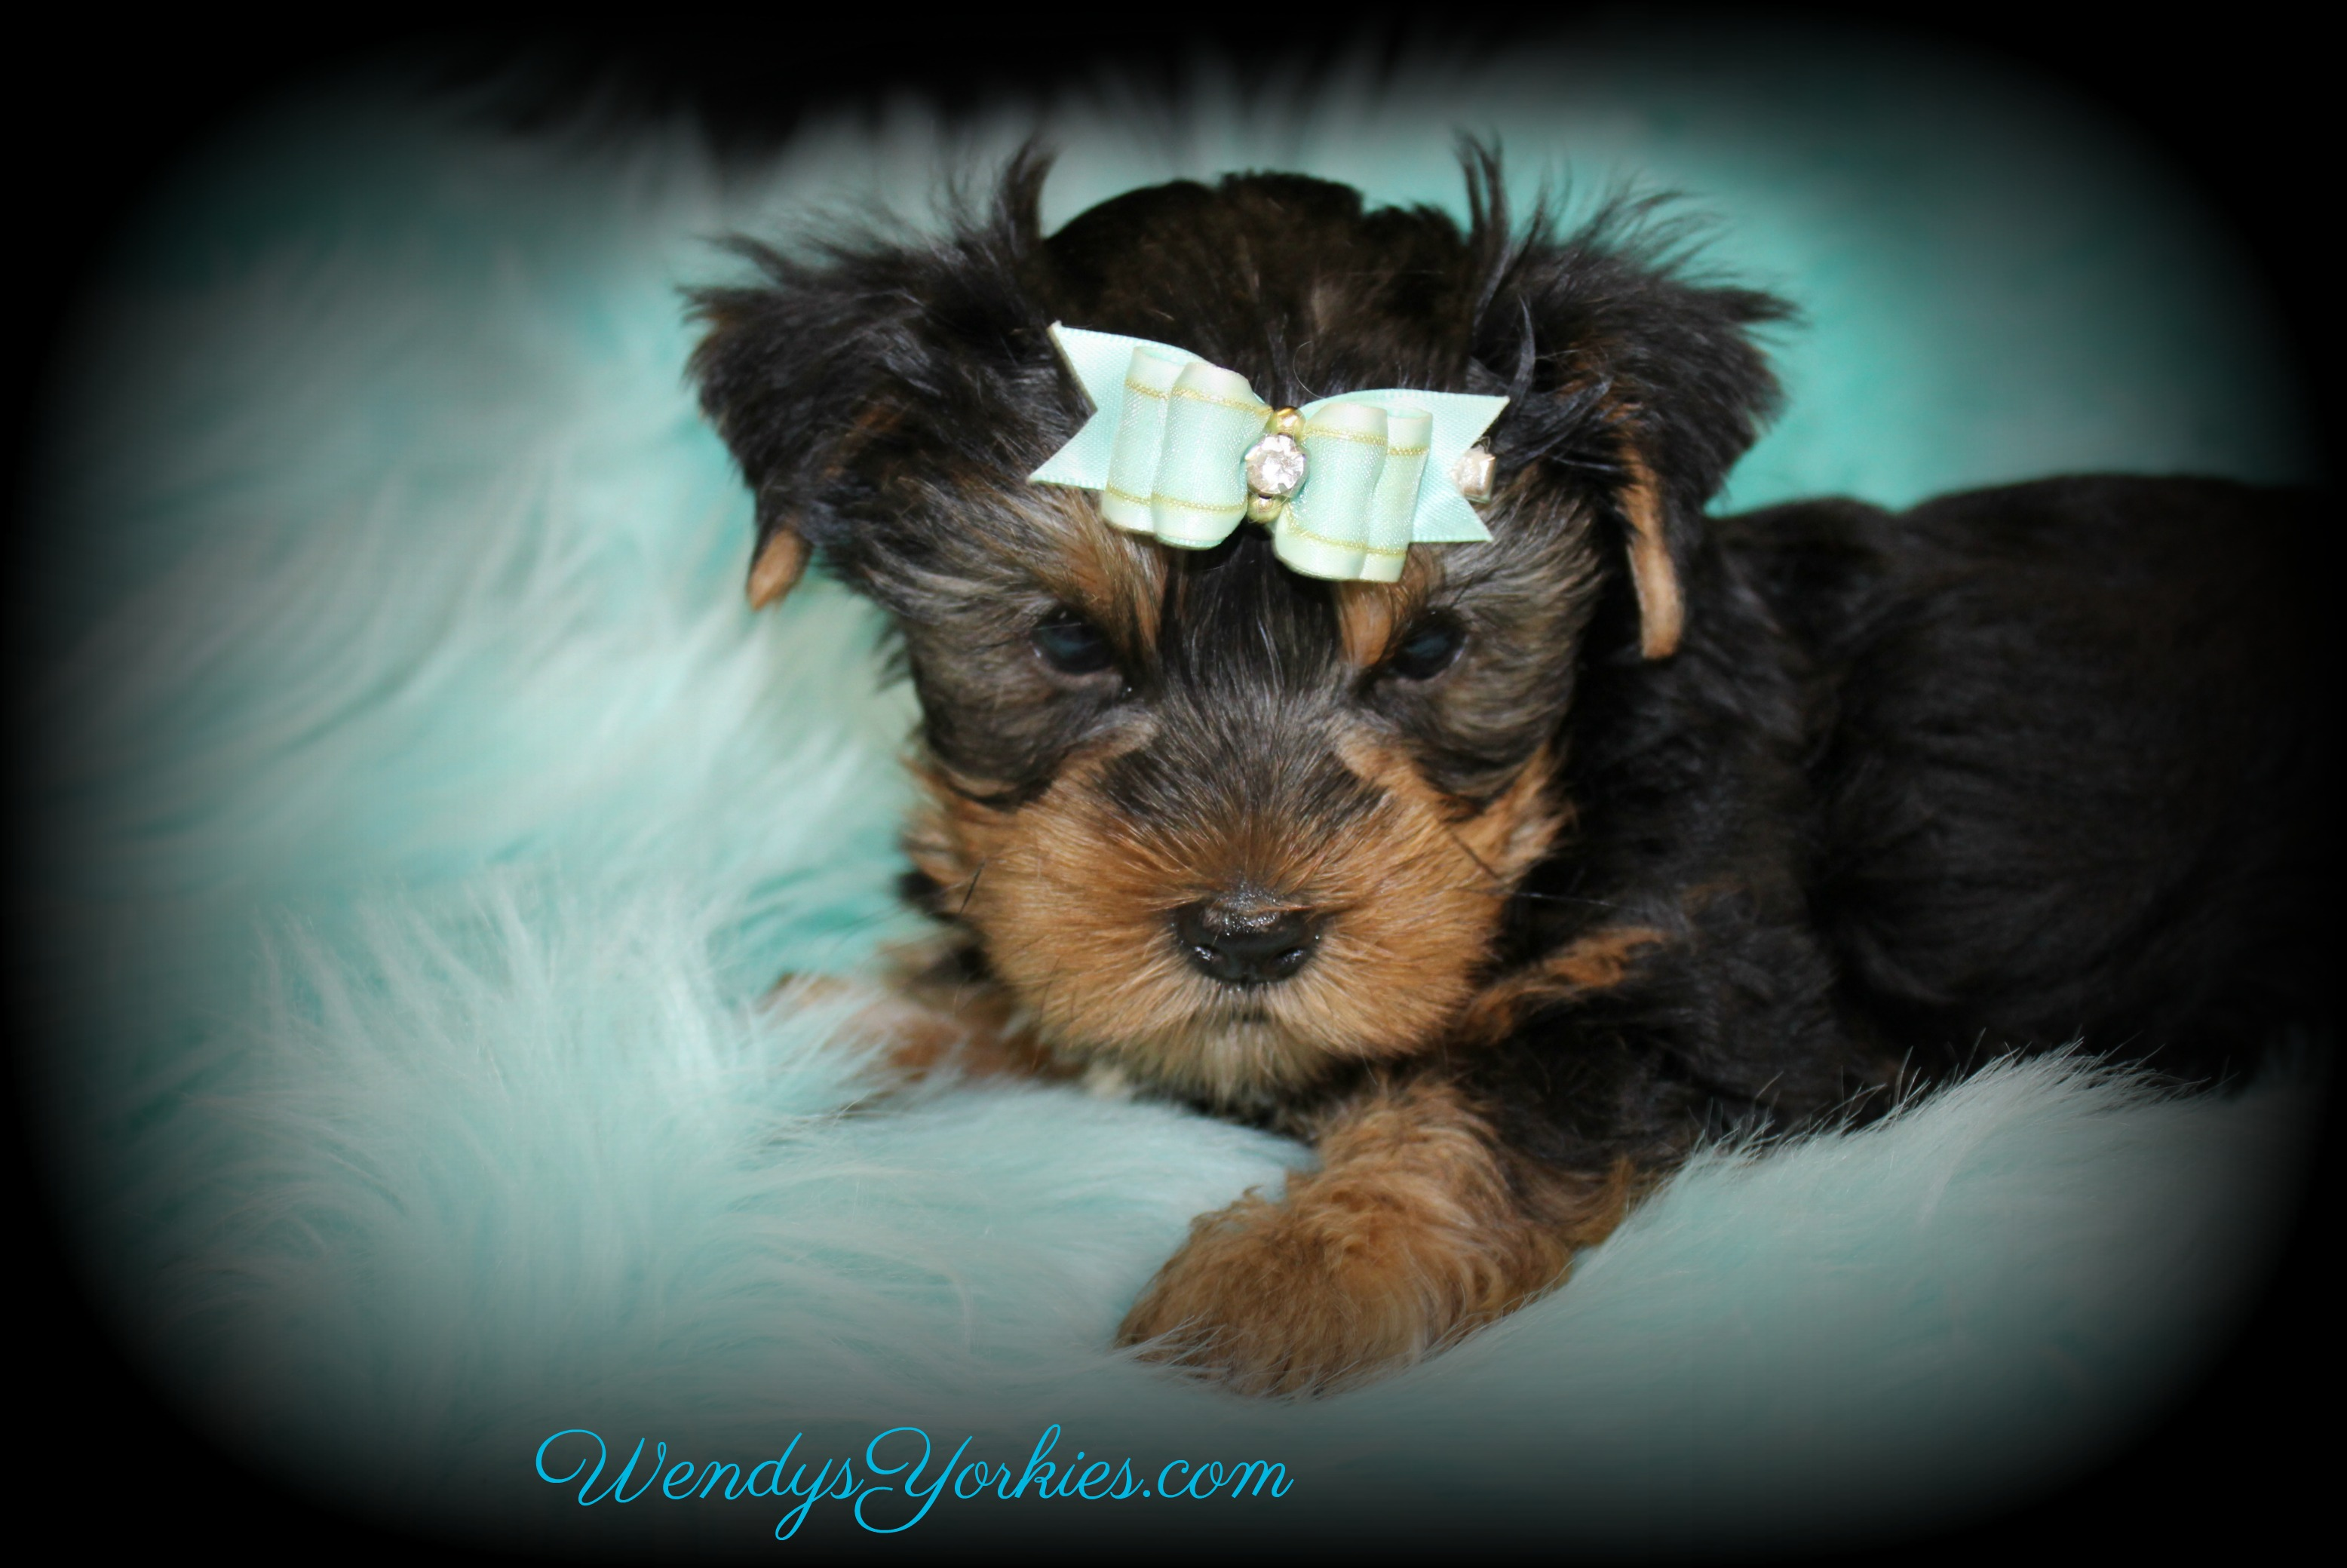 Standard size Yorkie puppy for sale, Lee, WendysYorkies.com